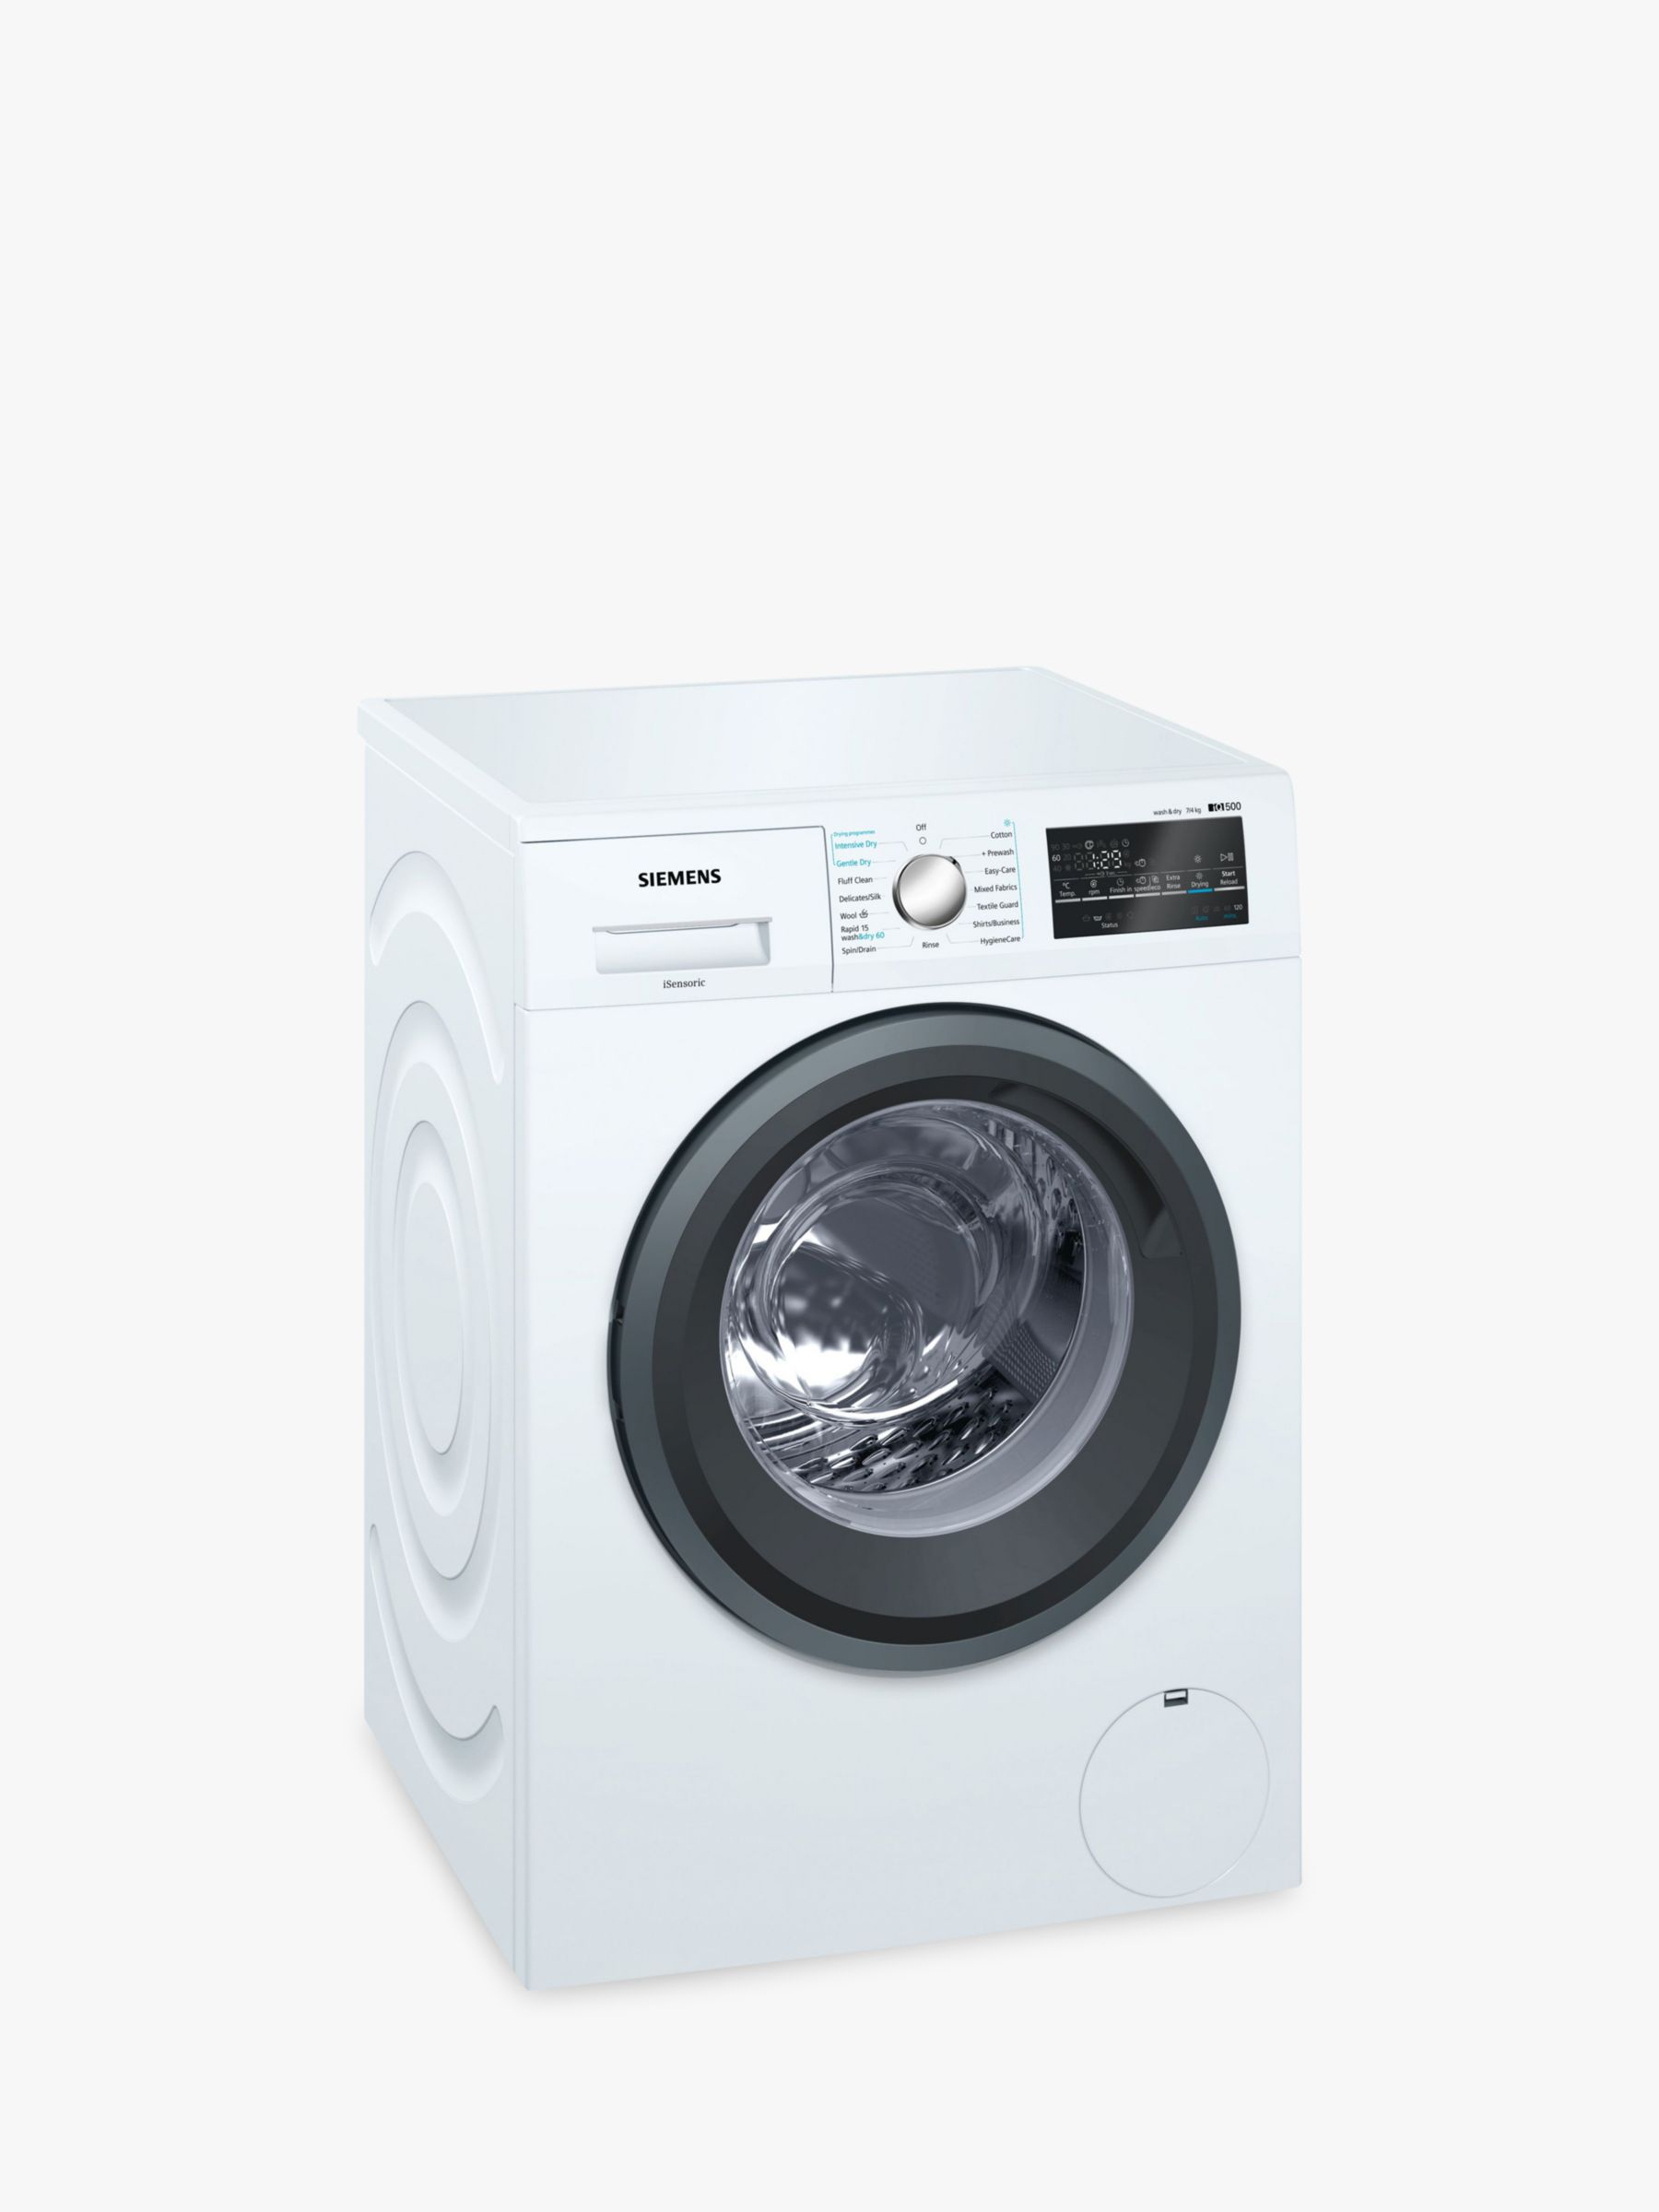 Siemens Siemens WD15G422GB Washer Dryer, 7kg/4kg Wash, A Energy Rating, 1500rpm Spin, White